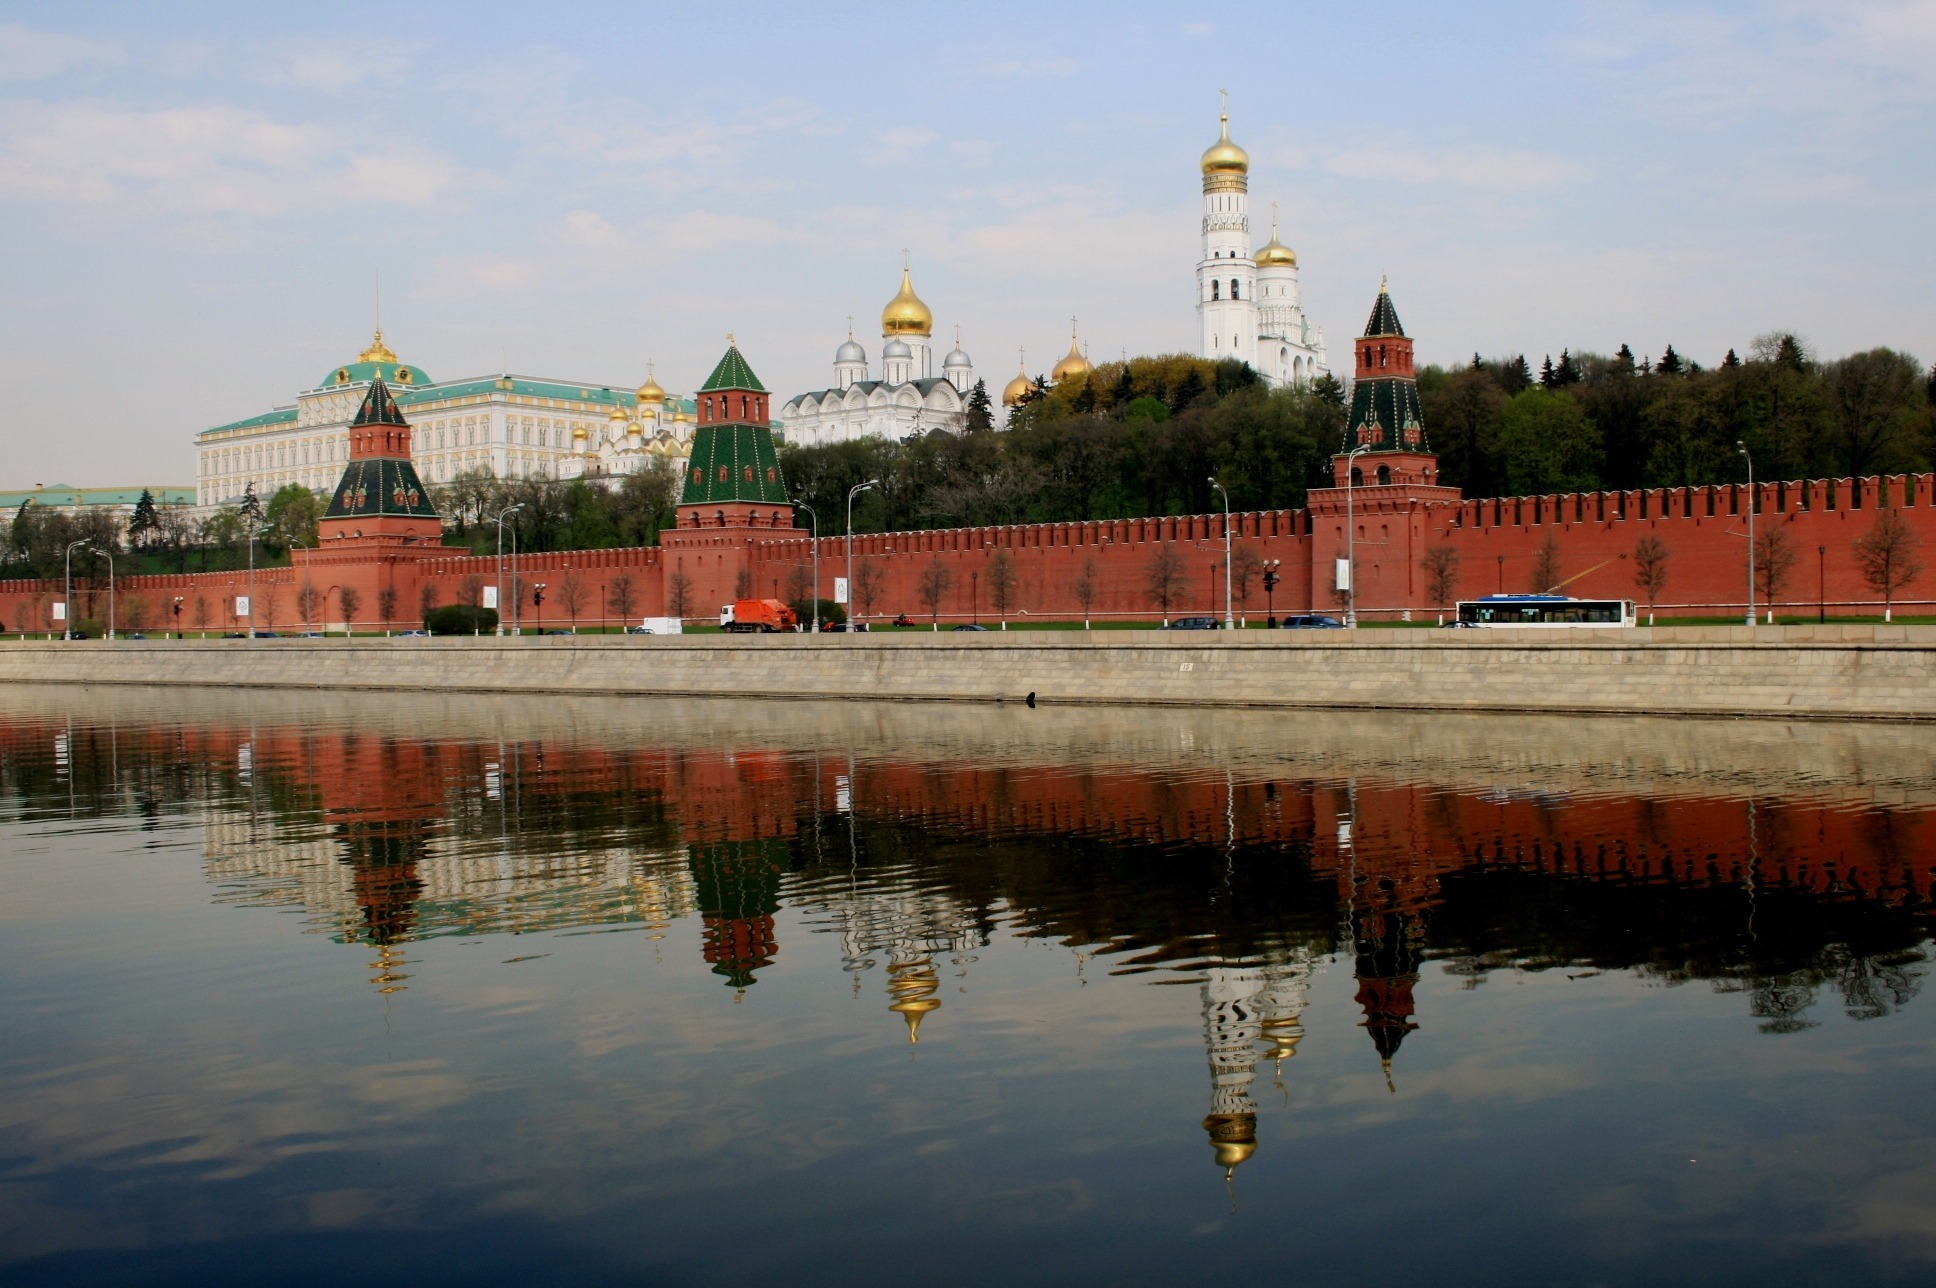 Reassessing RuNet: Russian internet isolation and implications for Russian cyber behavior